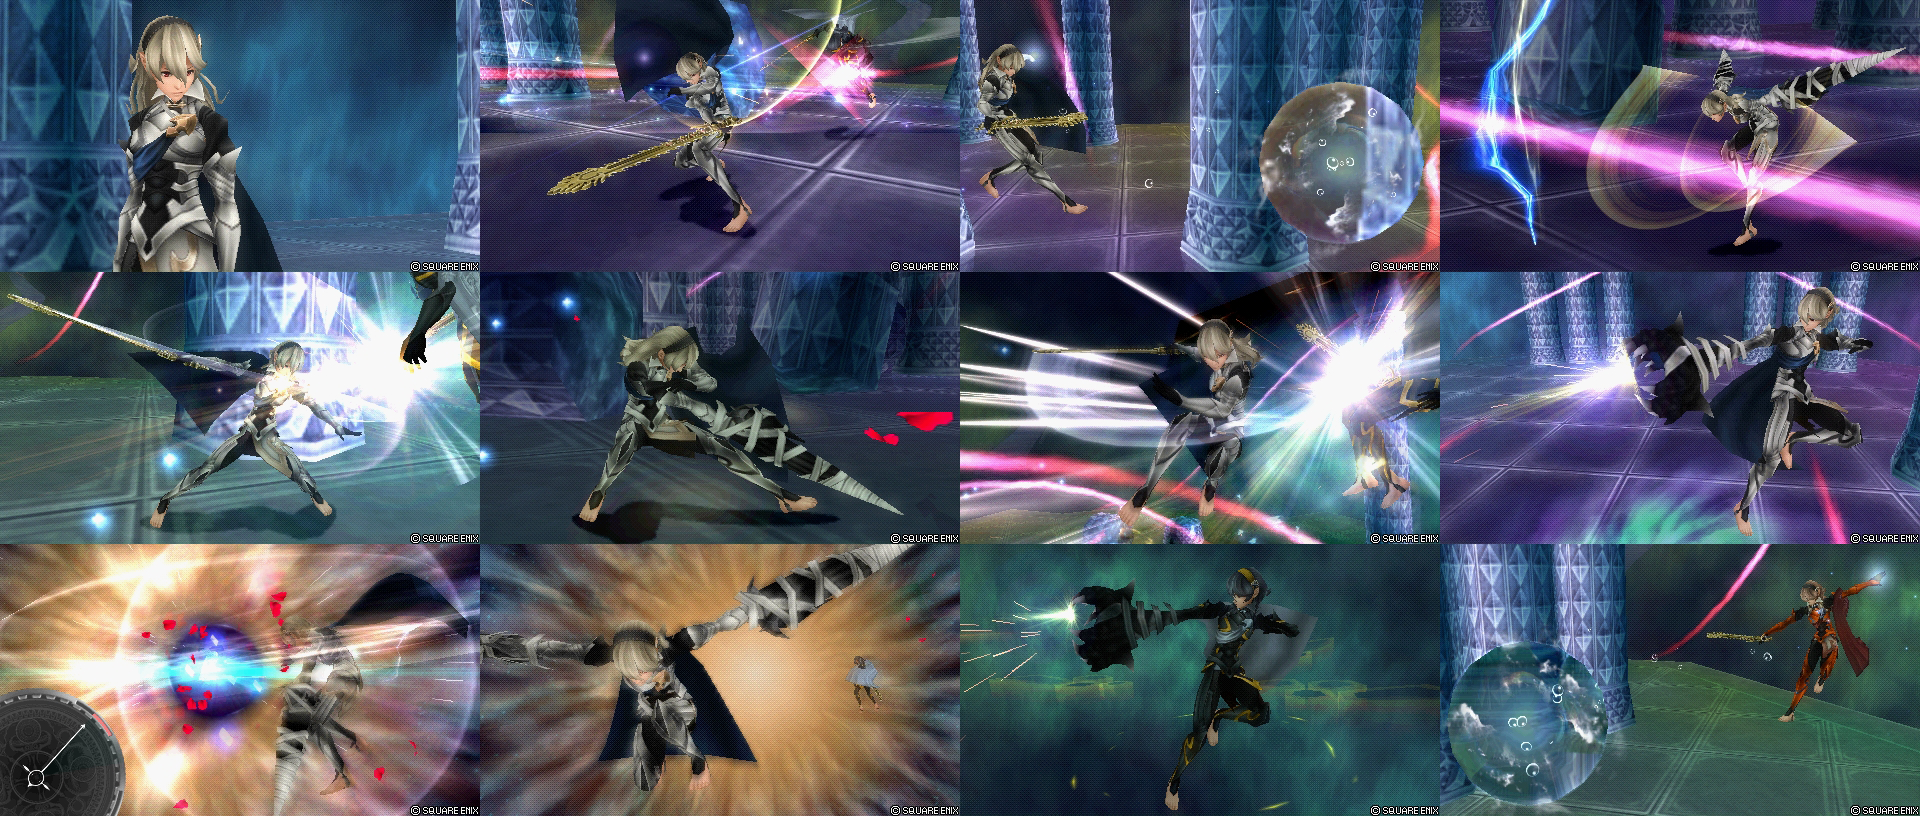 dissidia_012_mods__corrin__smash_3ds__by